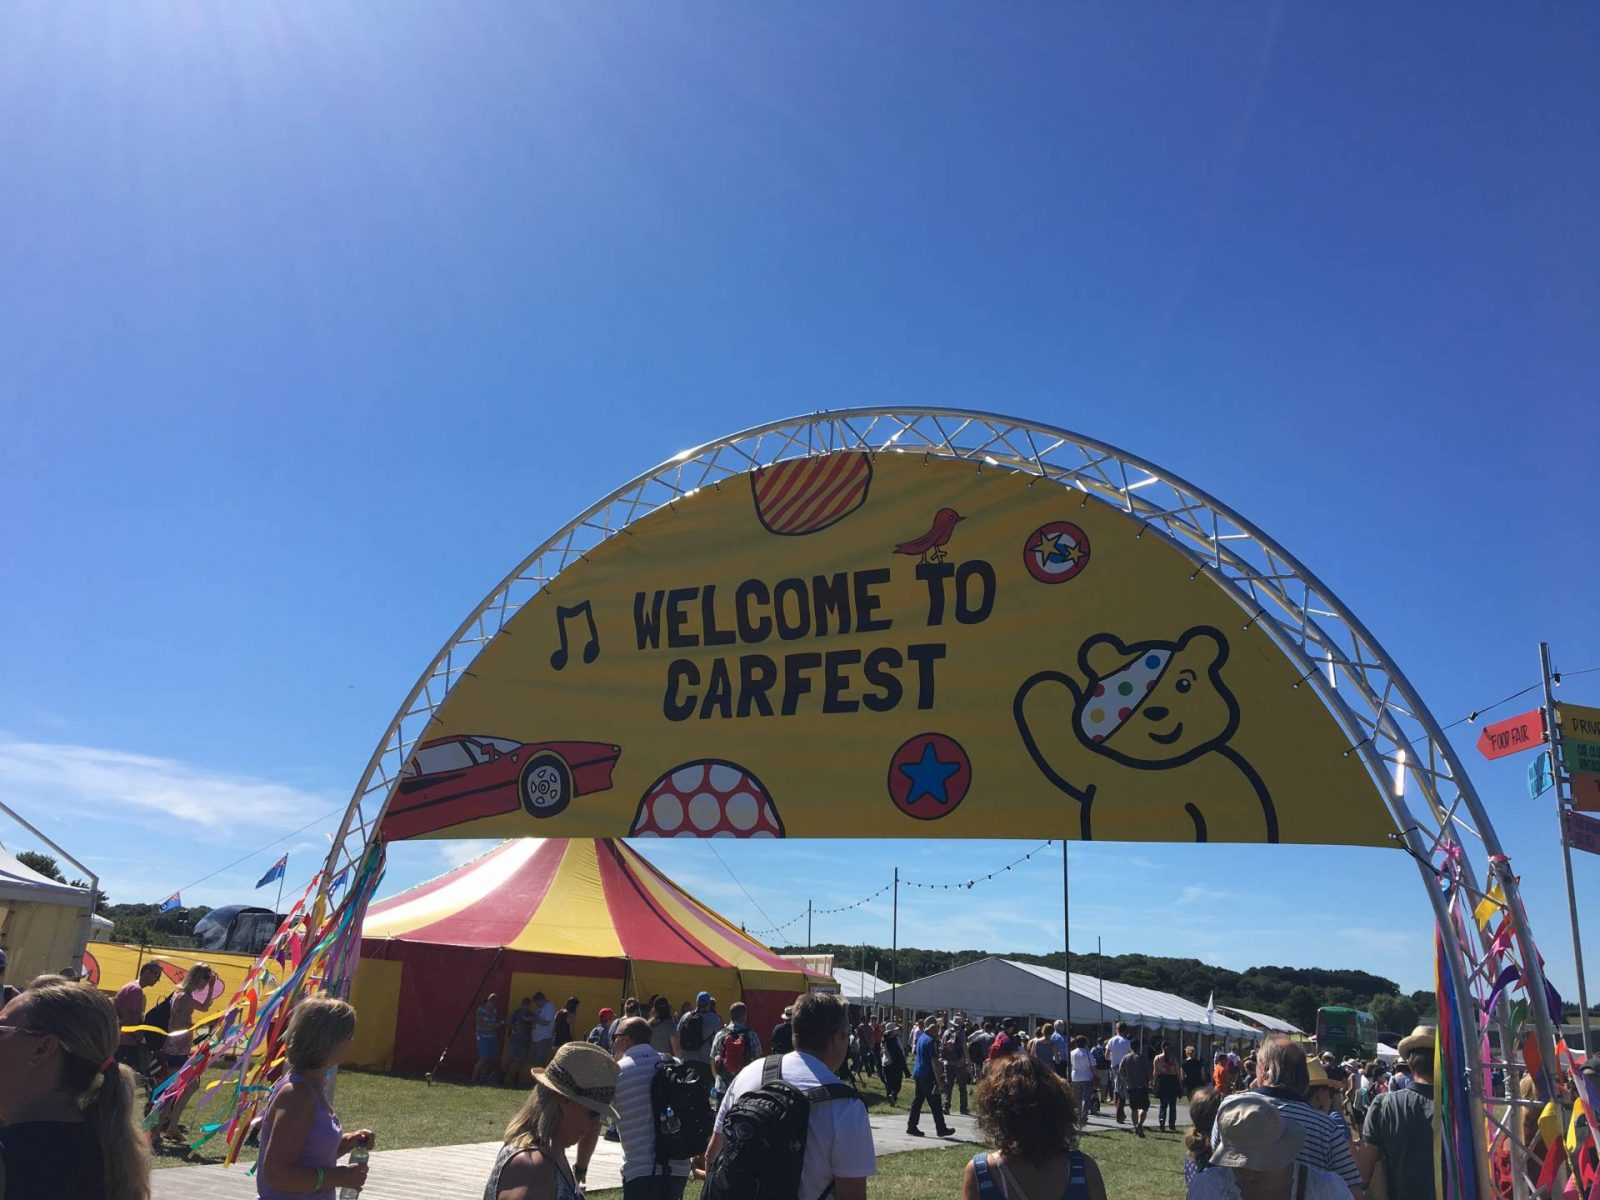 Our First Family Festival…CarFest!